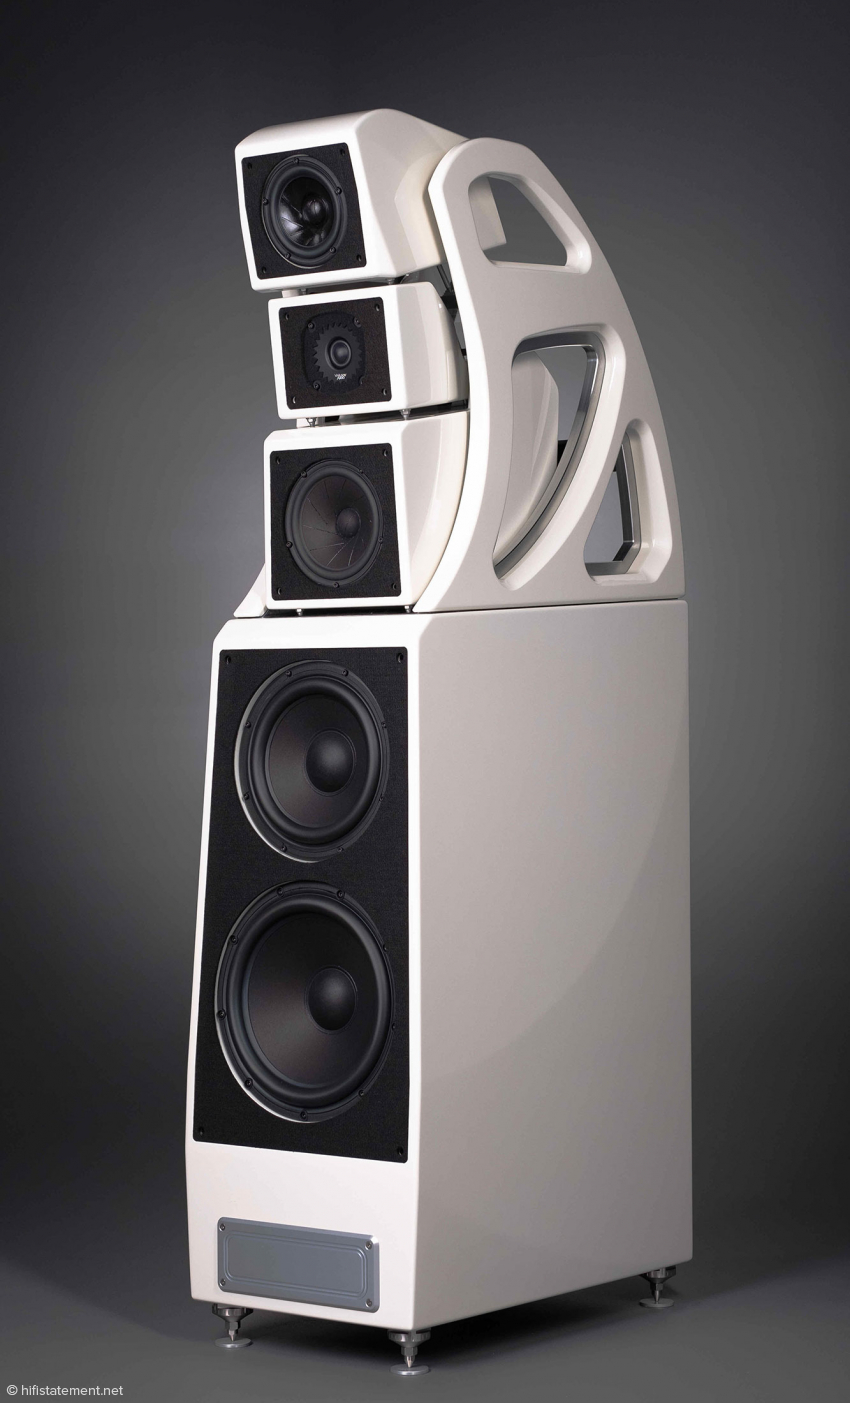 b_850_0_16777215_10_images_content_news_21-04-06_audioreference_Alexx-V-Ivory-Front-3-4.jpg